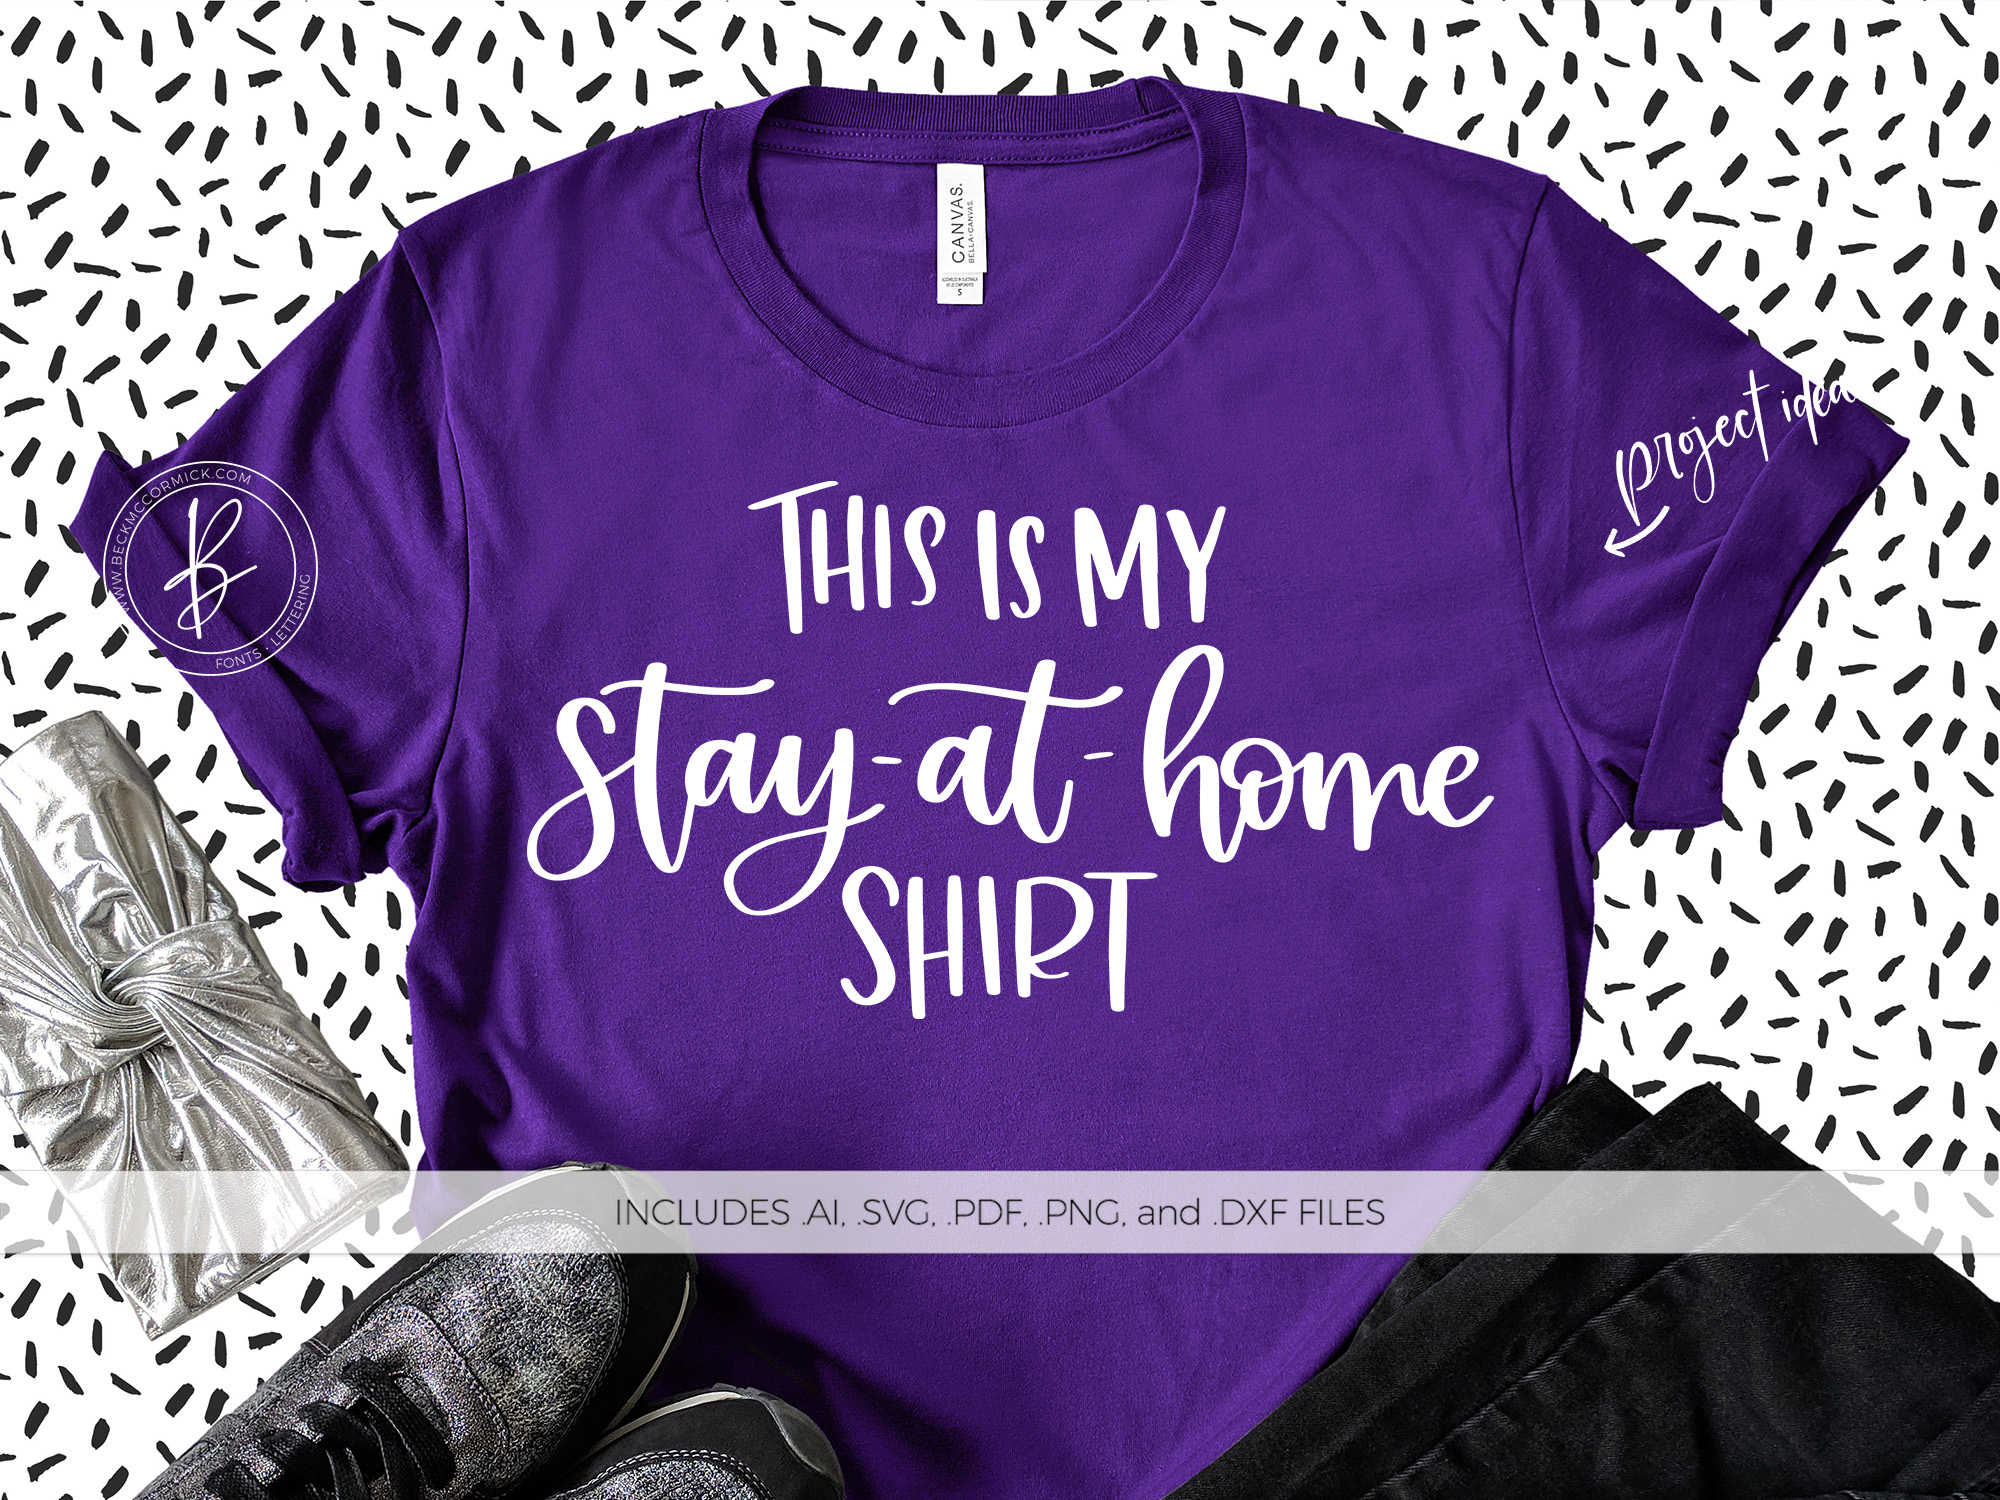 Download Free This Is My Stay At Home Shirt Graphic By Beckmccormick for Cricut Explore, Silhouette and other cutting machines.